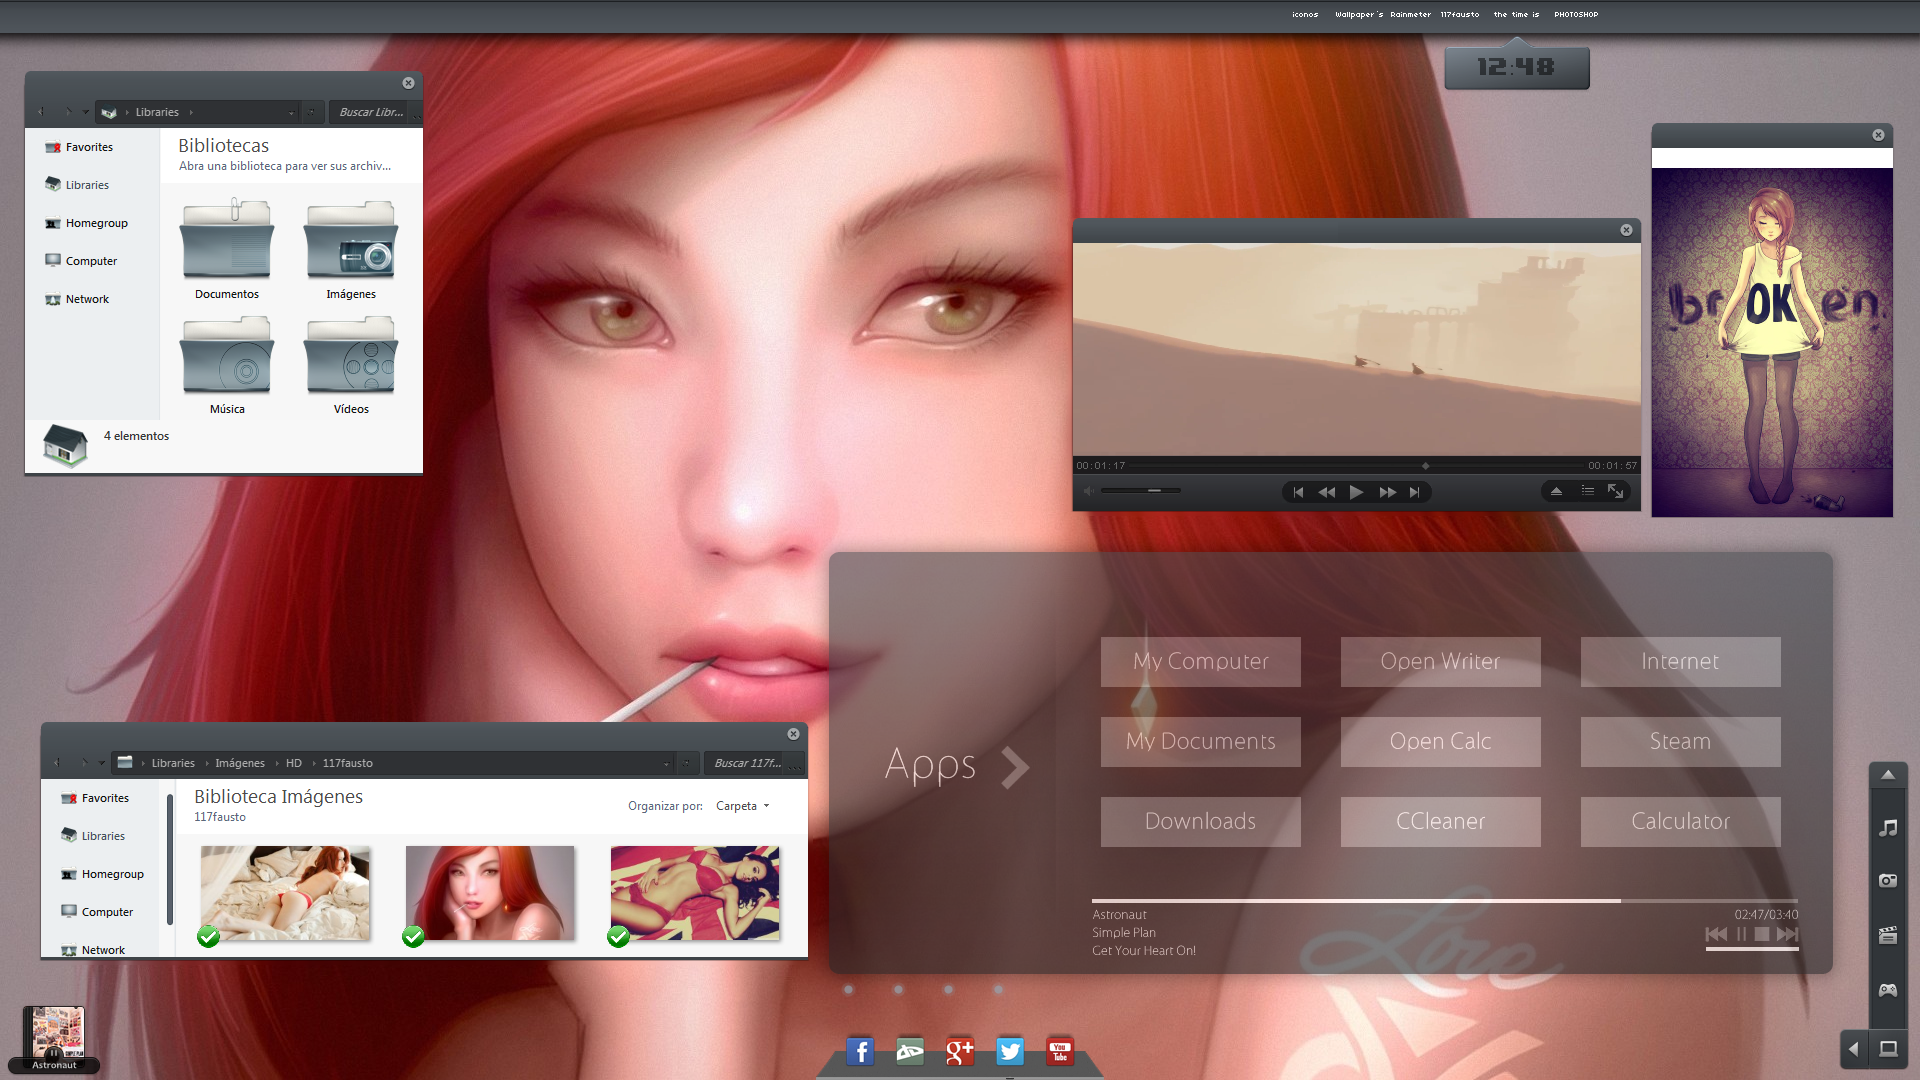 Tema para windows 7 Hebe-2 by 117fausto